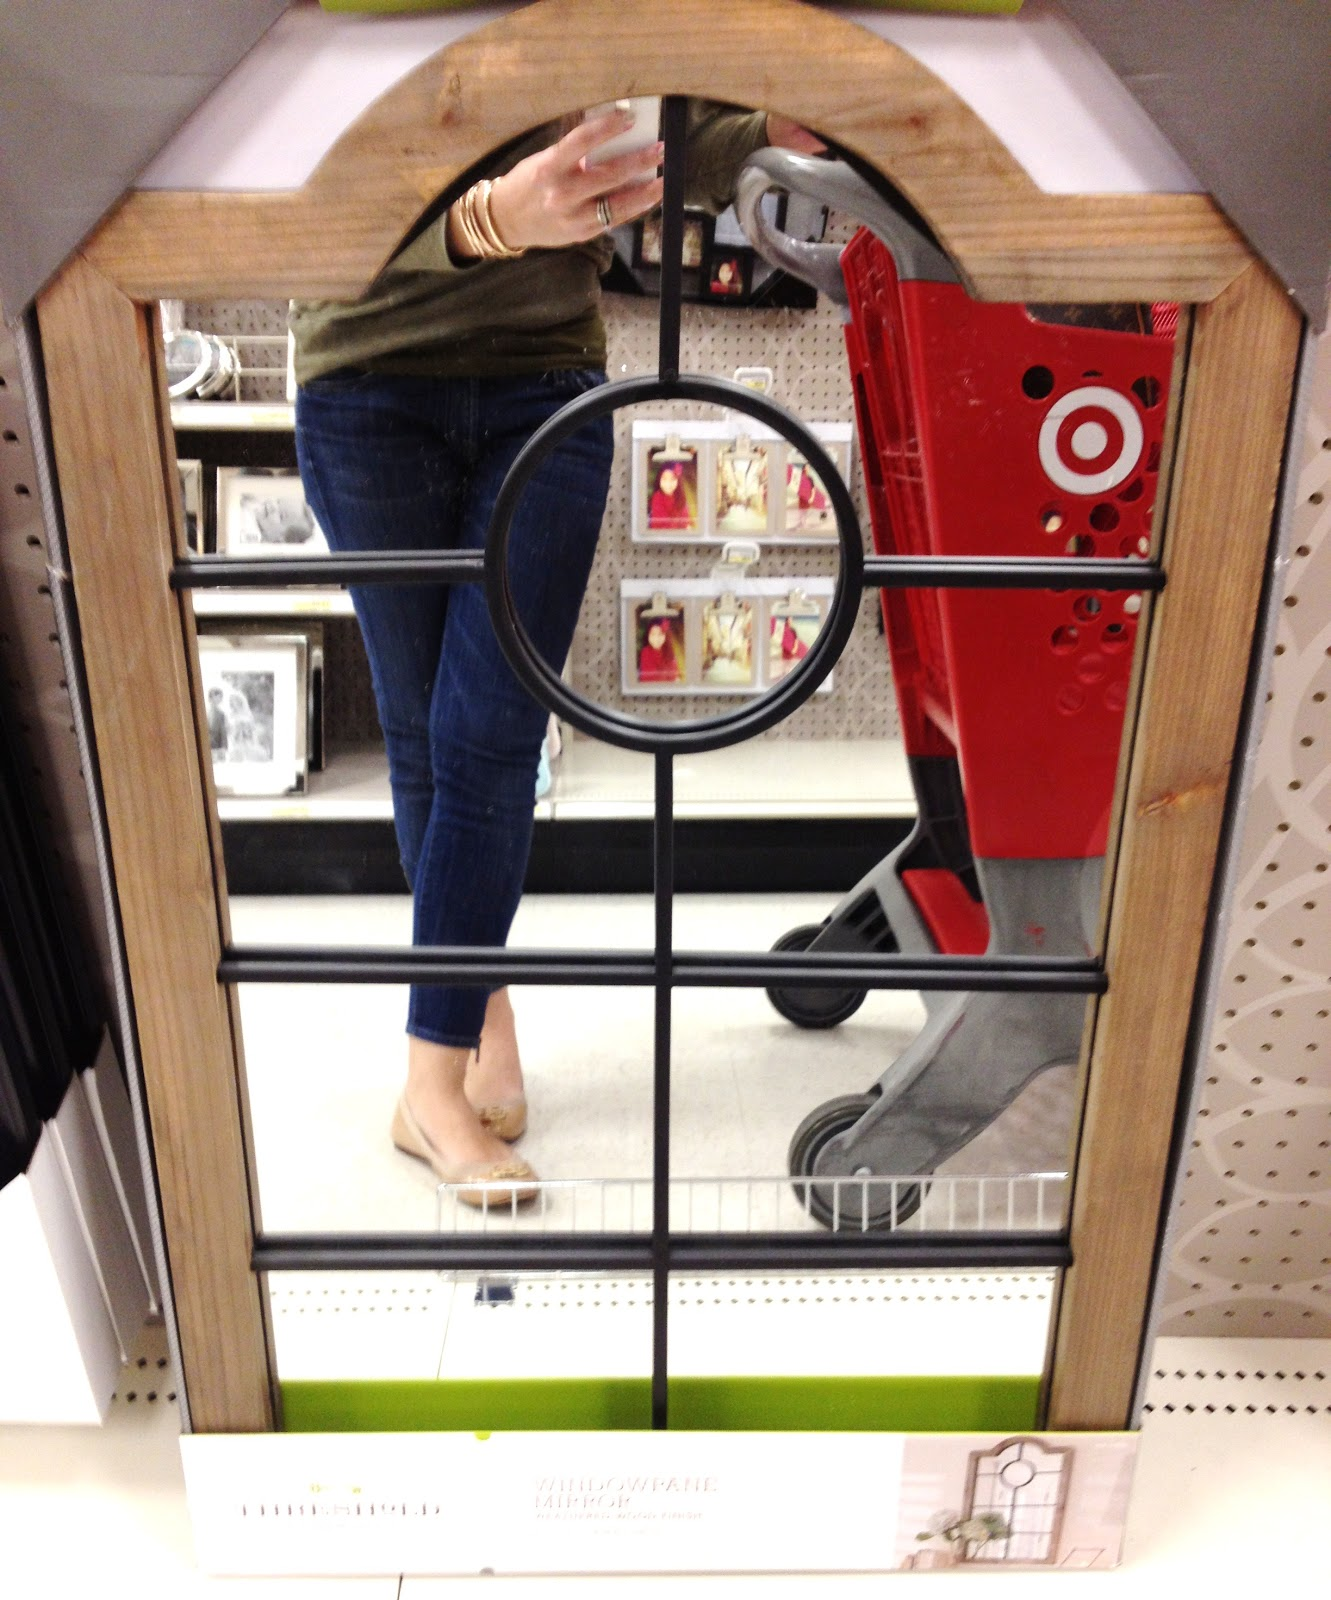 Tiffanyd Recent Target Finds Mirrors